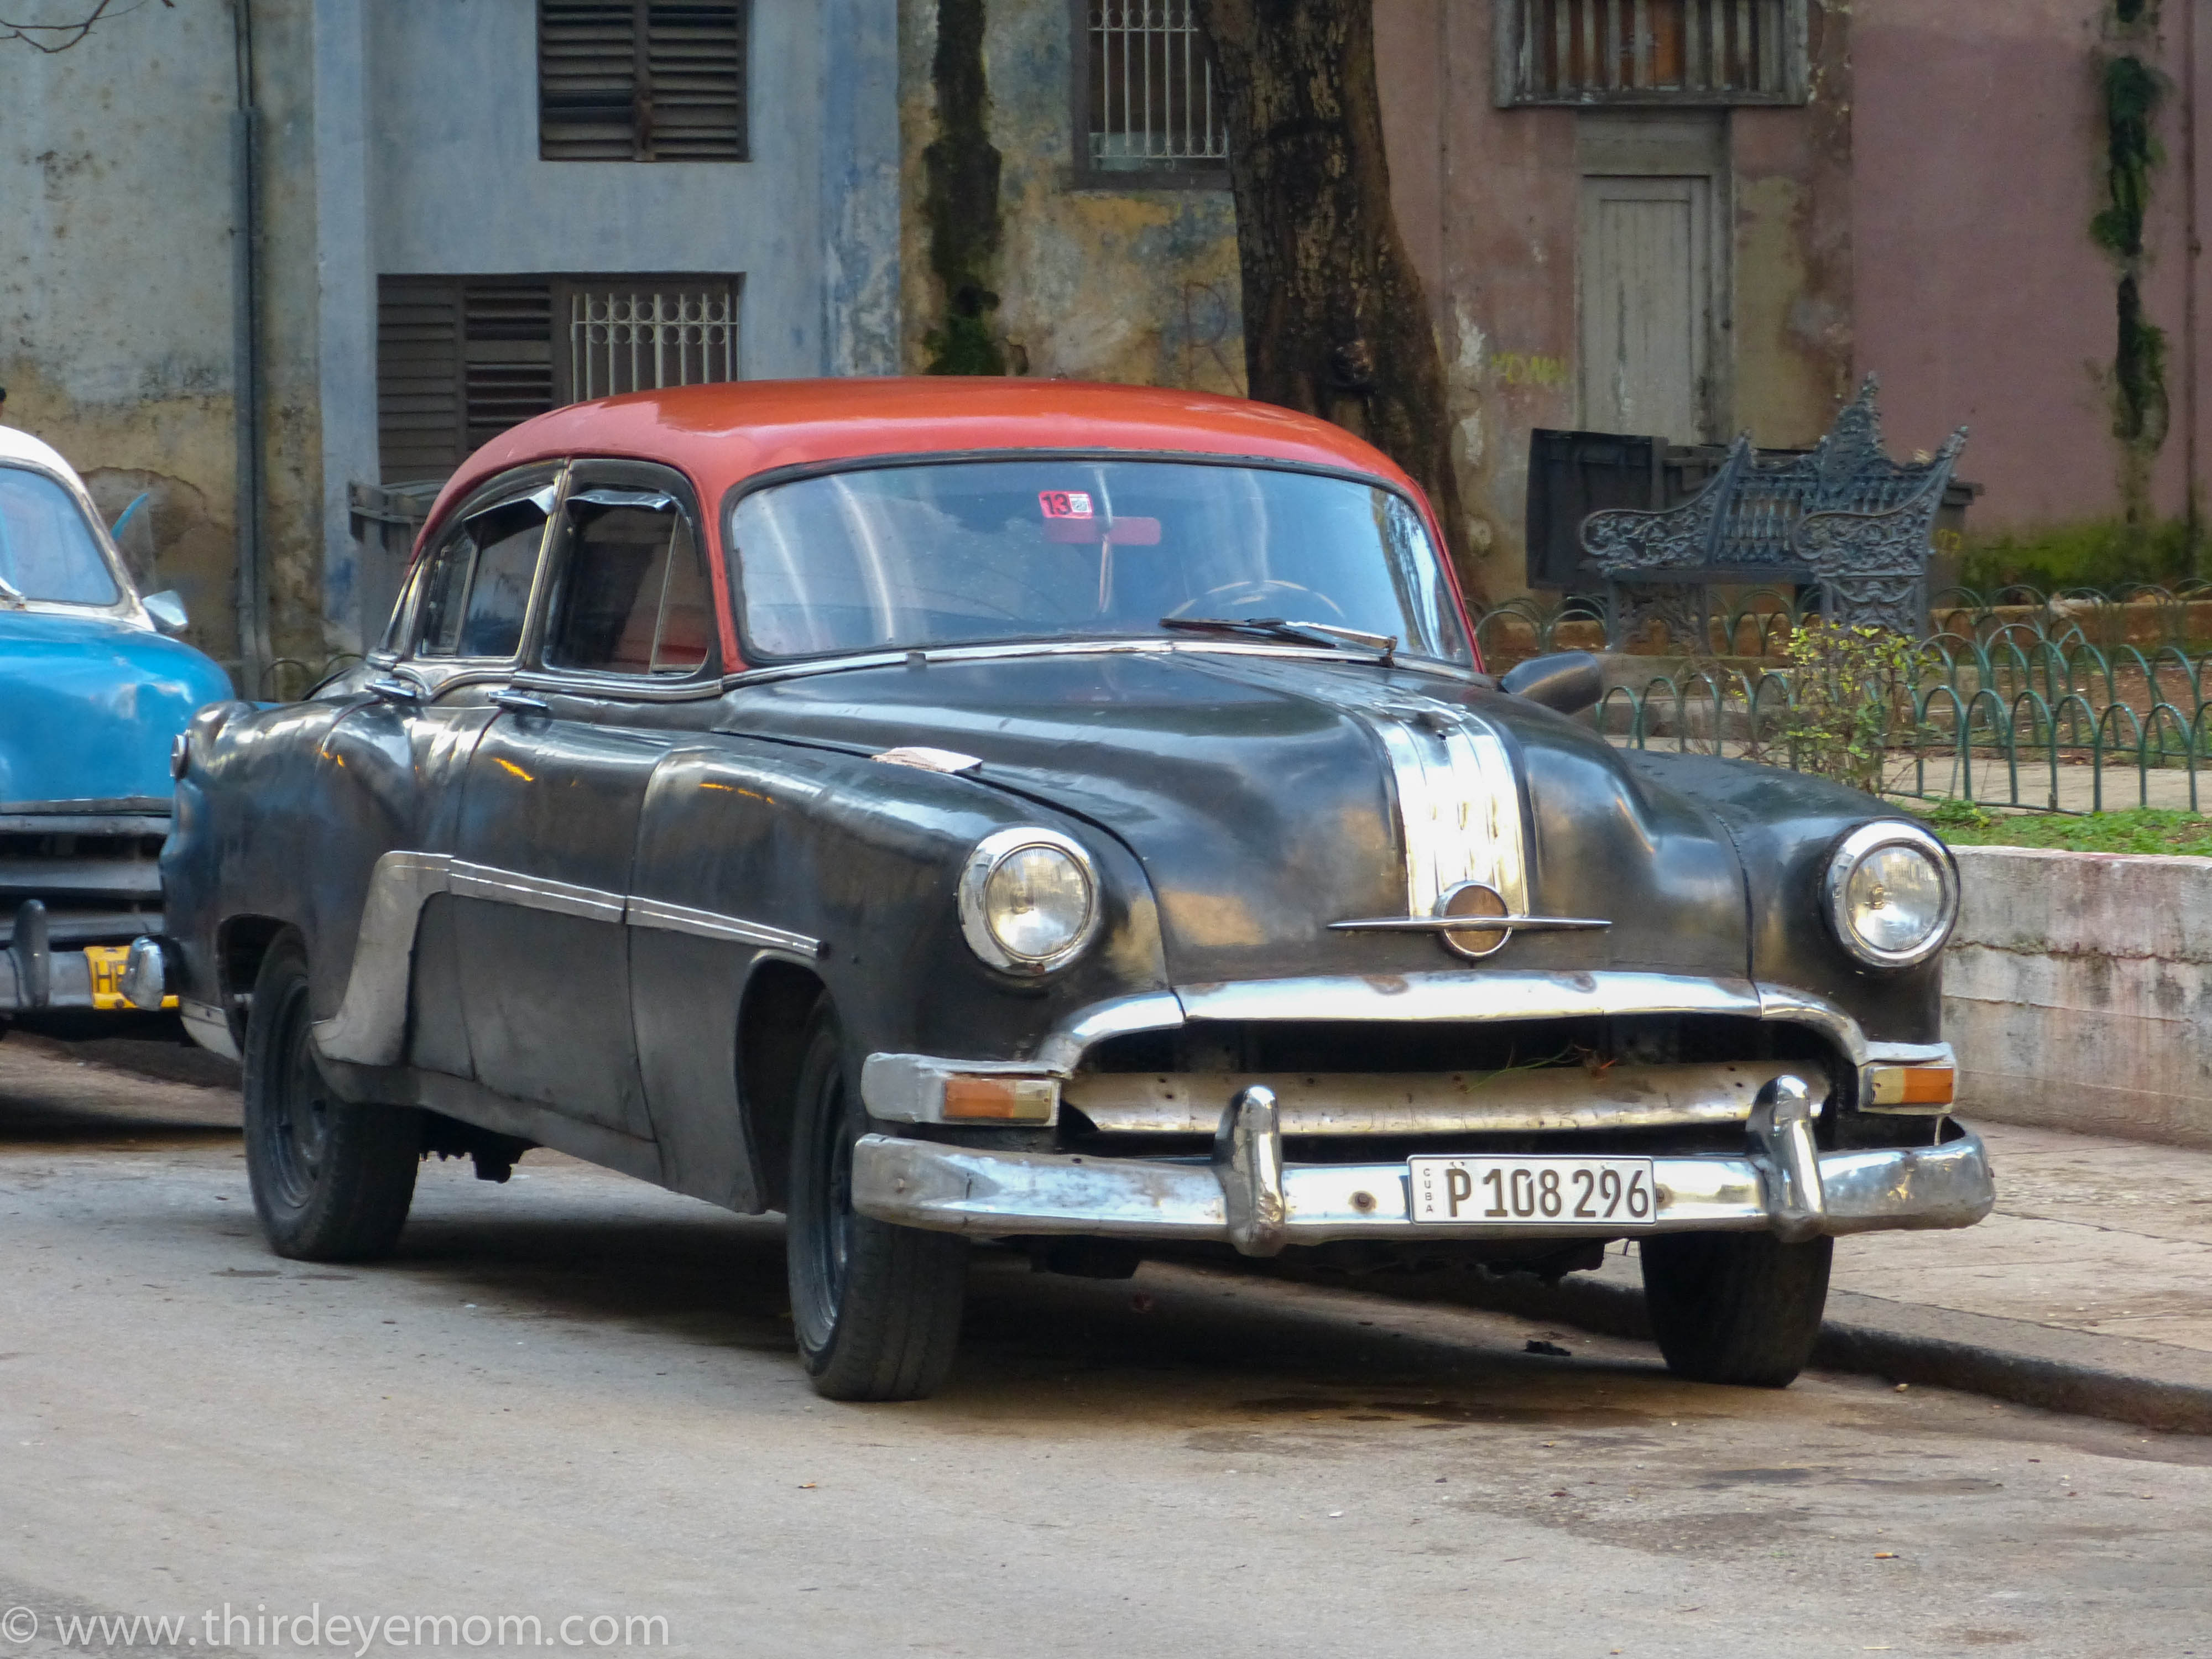 The Old Vintage Cars of Havana - Thirdeyemom